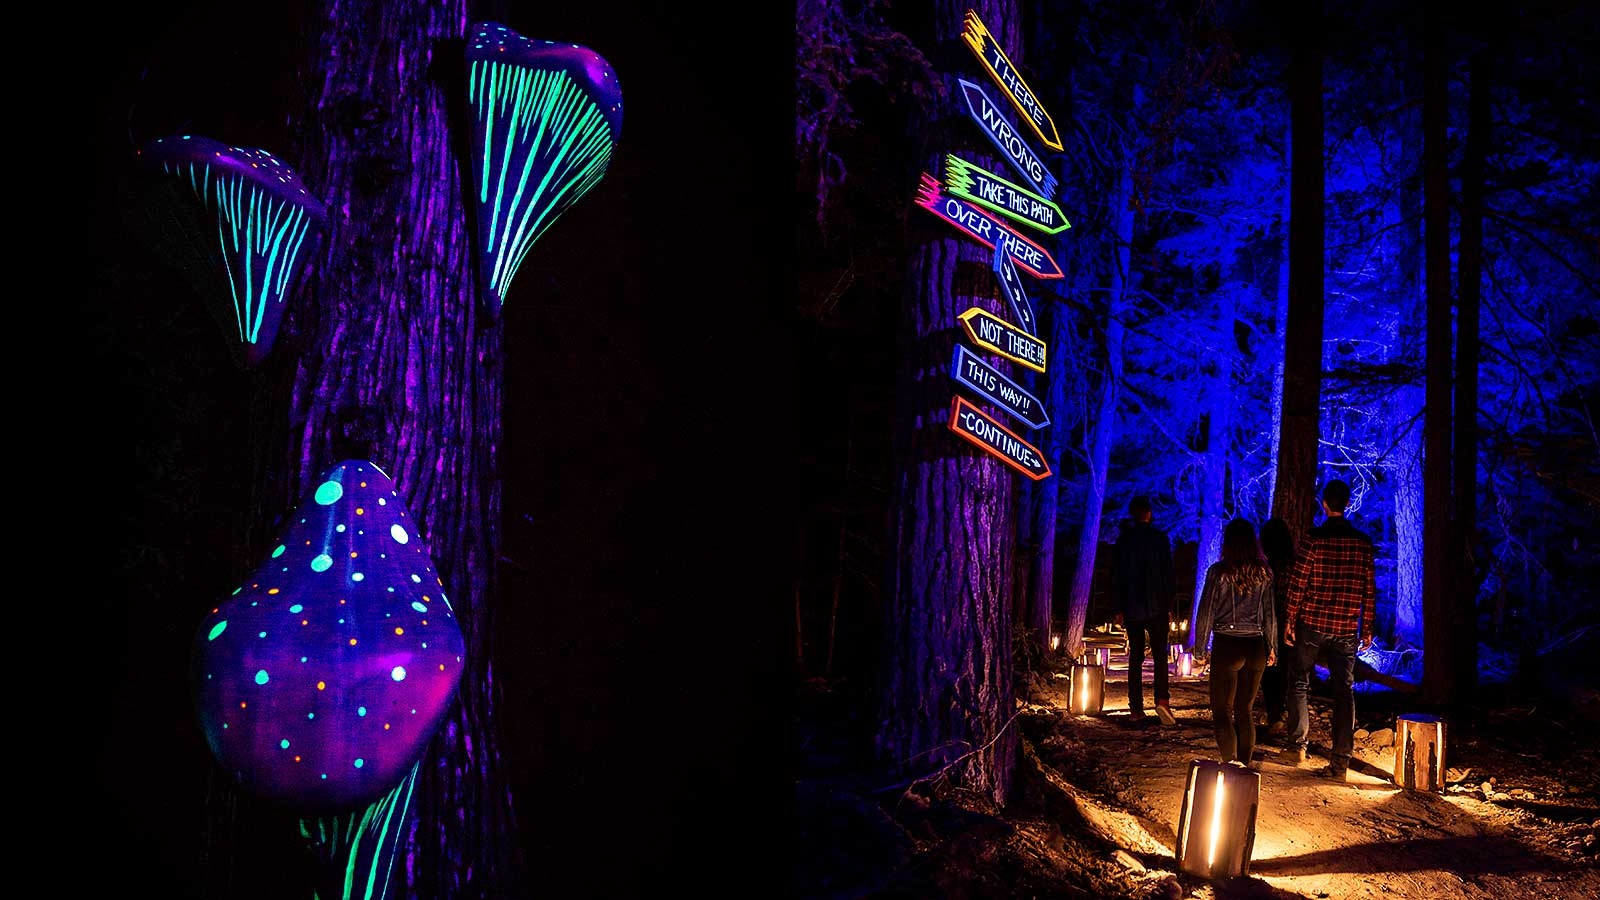 3 people walking through an illuminated Forrest with neon lights & signs